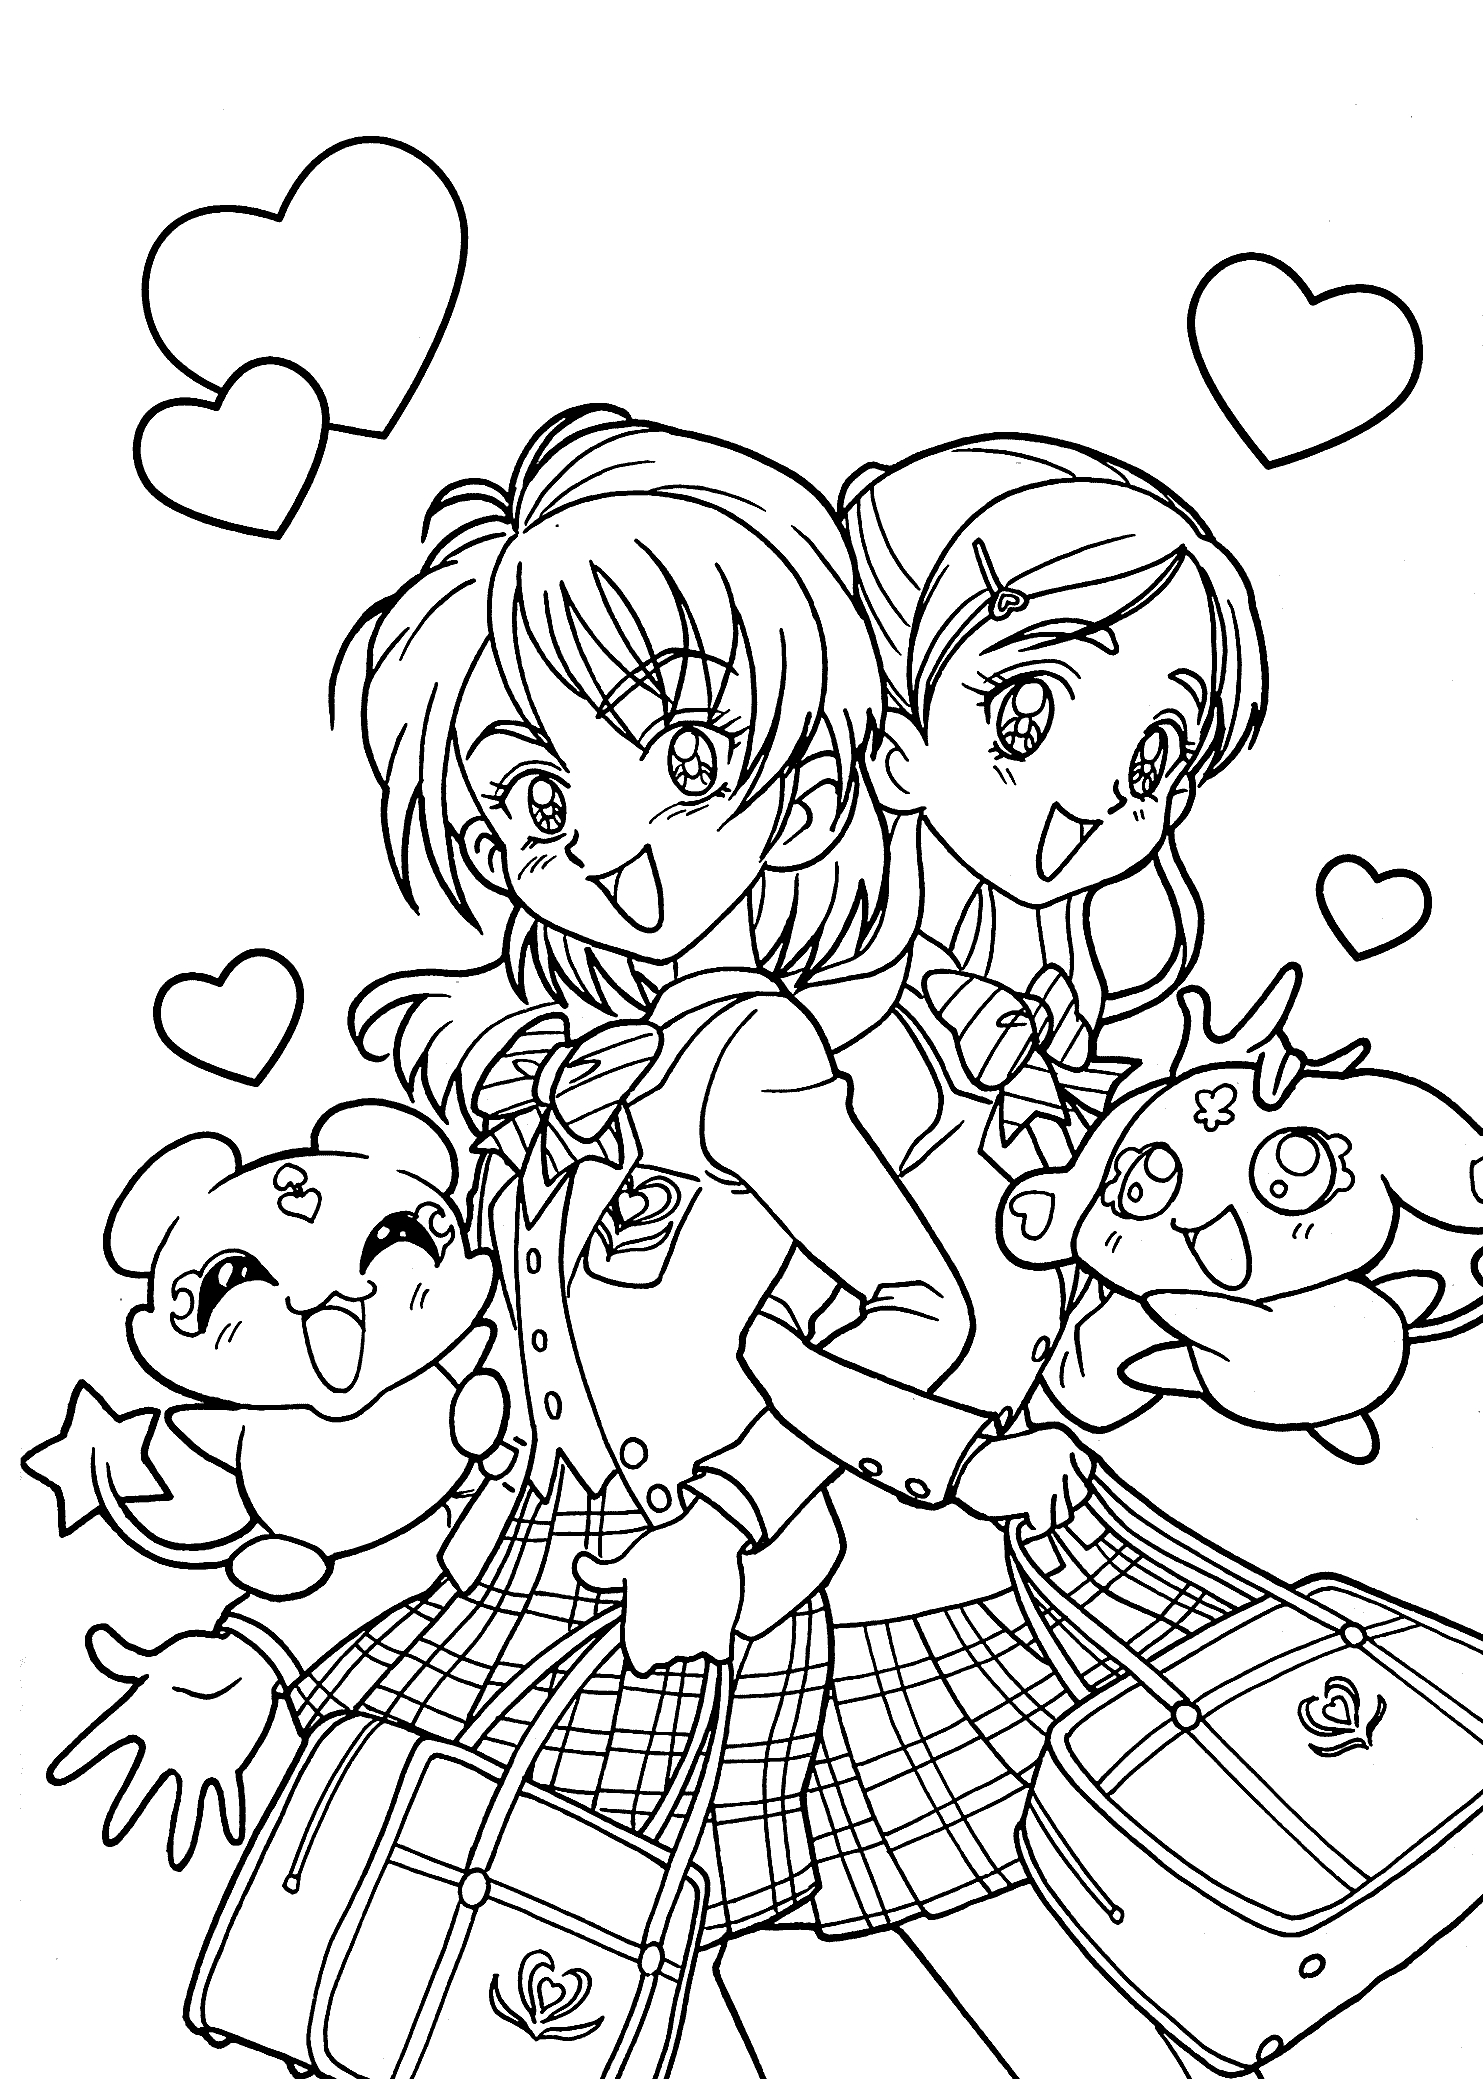 1483x2079 Anime School Girl Coloring Pages Collection Free Coloring Sheets